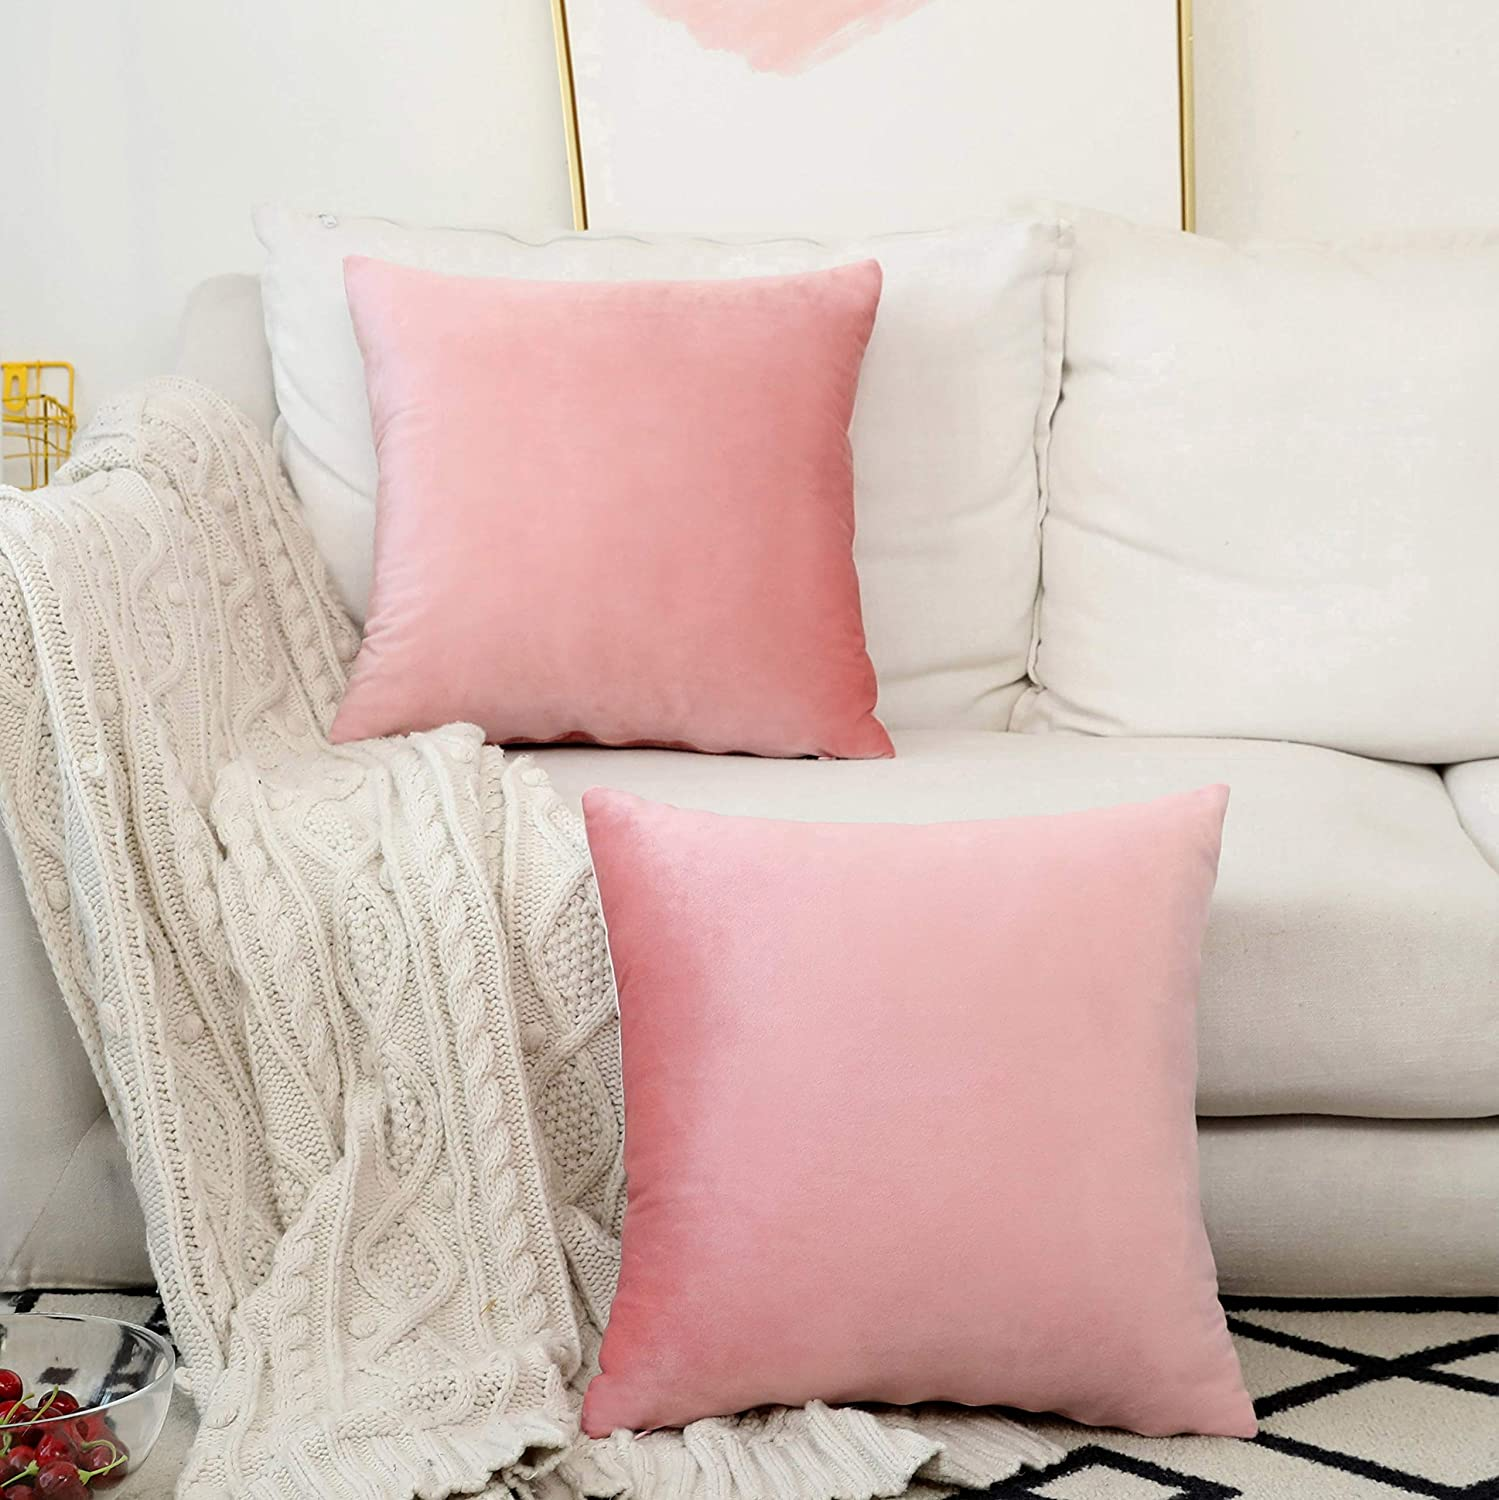 Home Brilliant Pink Throw Pillow Covers Solid Soft Velvet Decorative Accent Pillowcases for Teen Girl, Set of 2, 45cm,(18x18 inches), Blush Pink